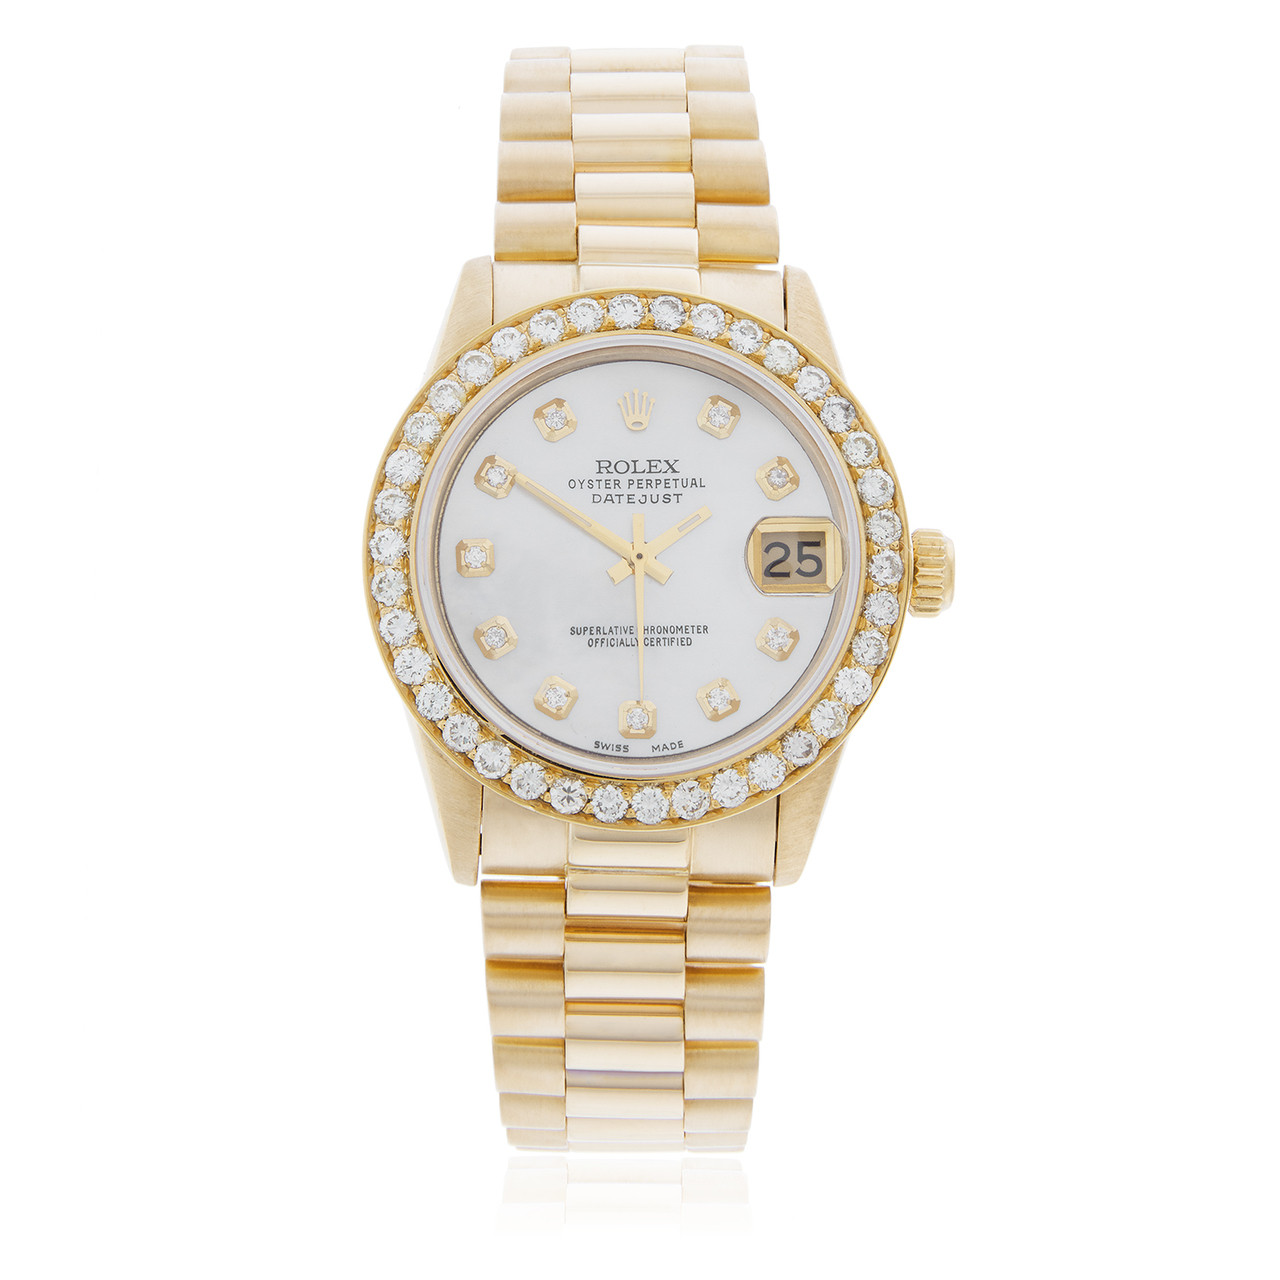 Rolex Ladies Watches Rolex Lady Datejust 18k Yellow Gold President 2 5ct Diamond Bezel Automatic Women S Watch